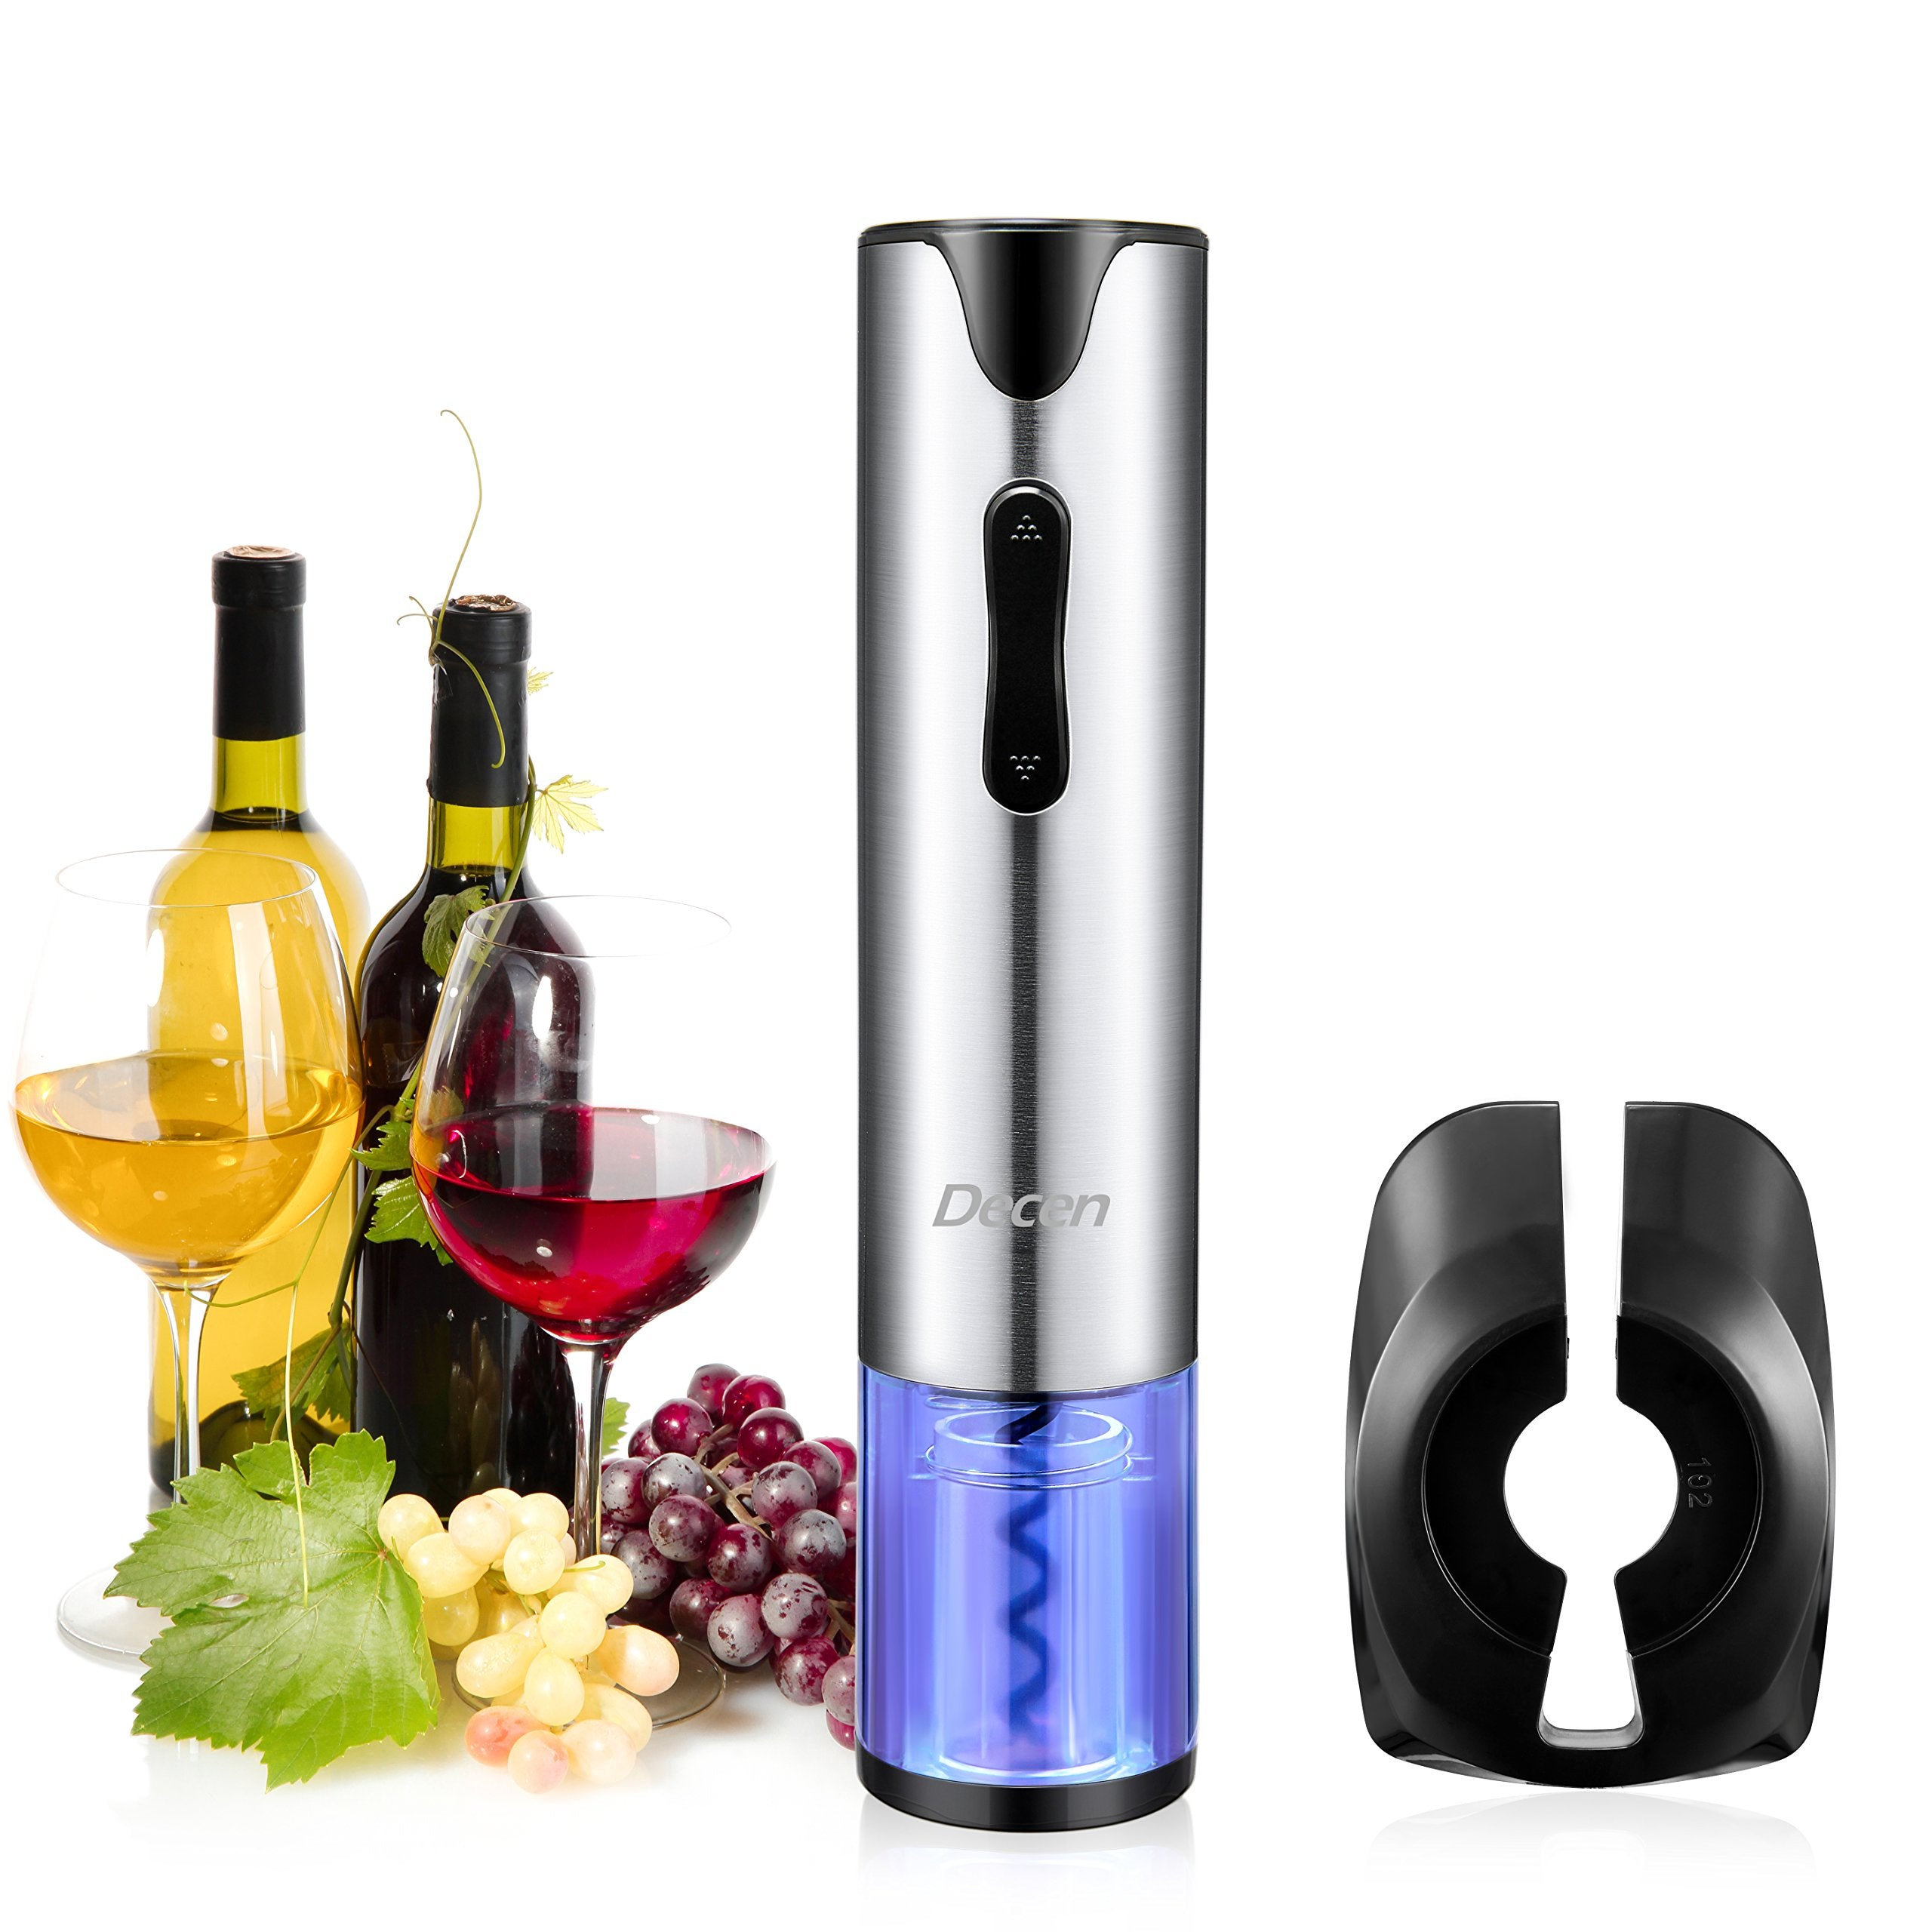 Wine Opener,Wine Corkscrew, USB Electric Wine Opener Kit, Stainless Steel Color Chaning Corkscrew Wine Opener with Free Foil Cutter - oblevs